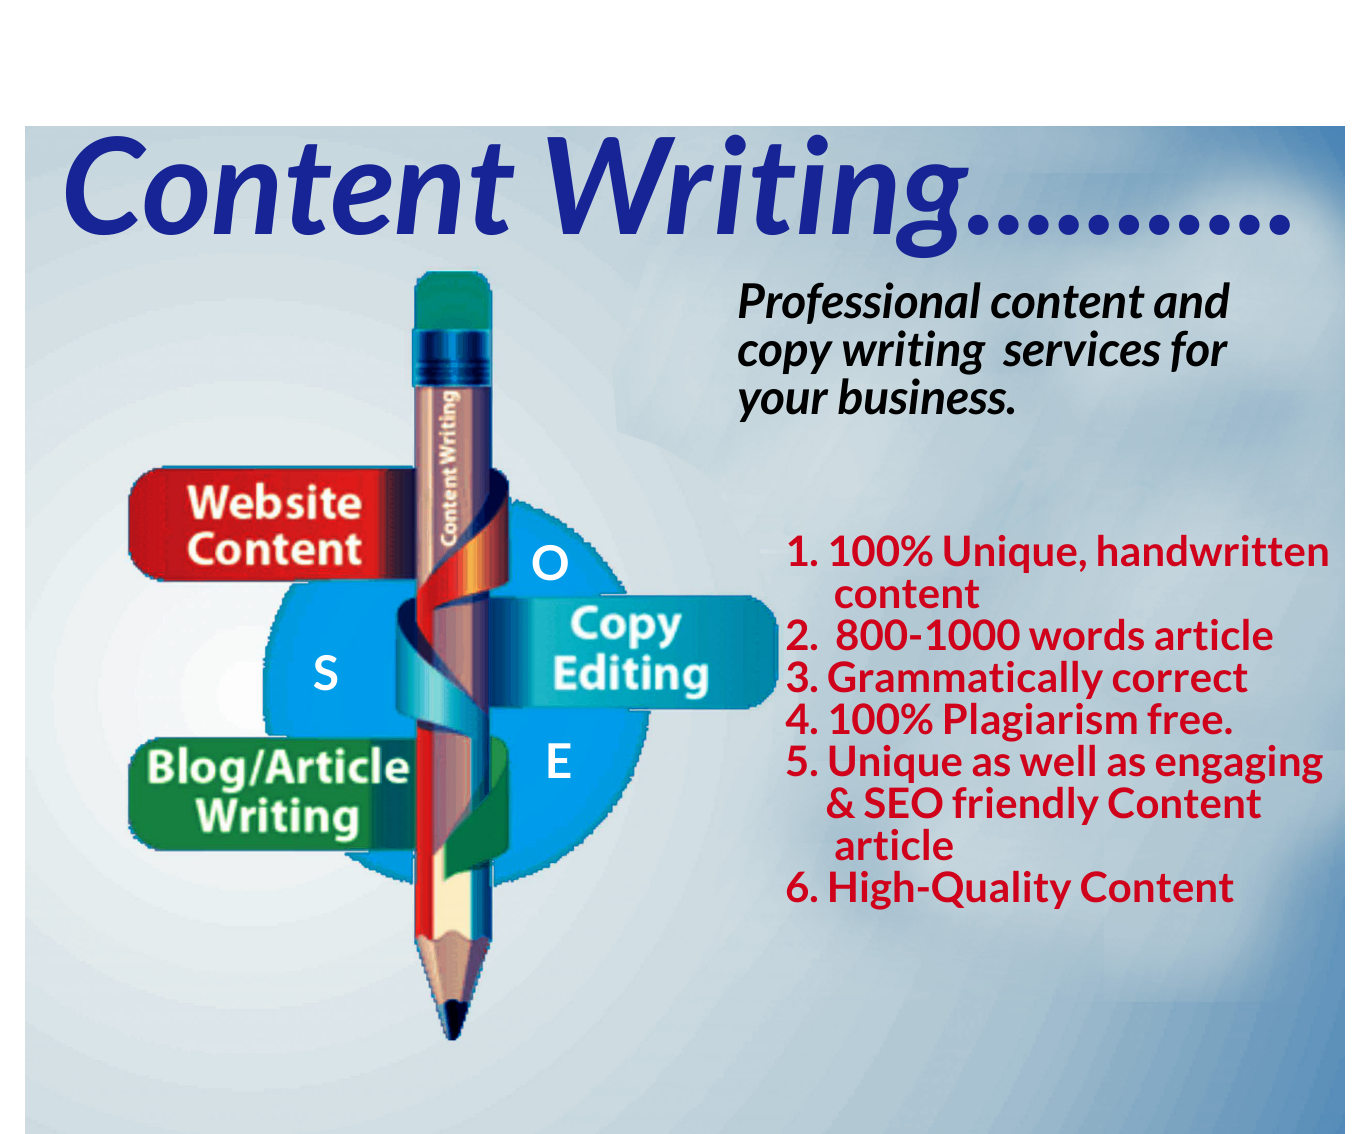 I will write a 800-1000 word SEO friendly article for your Blog and Website